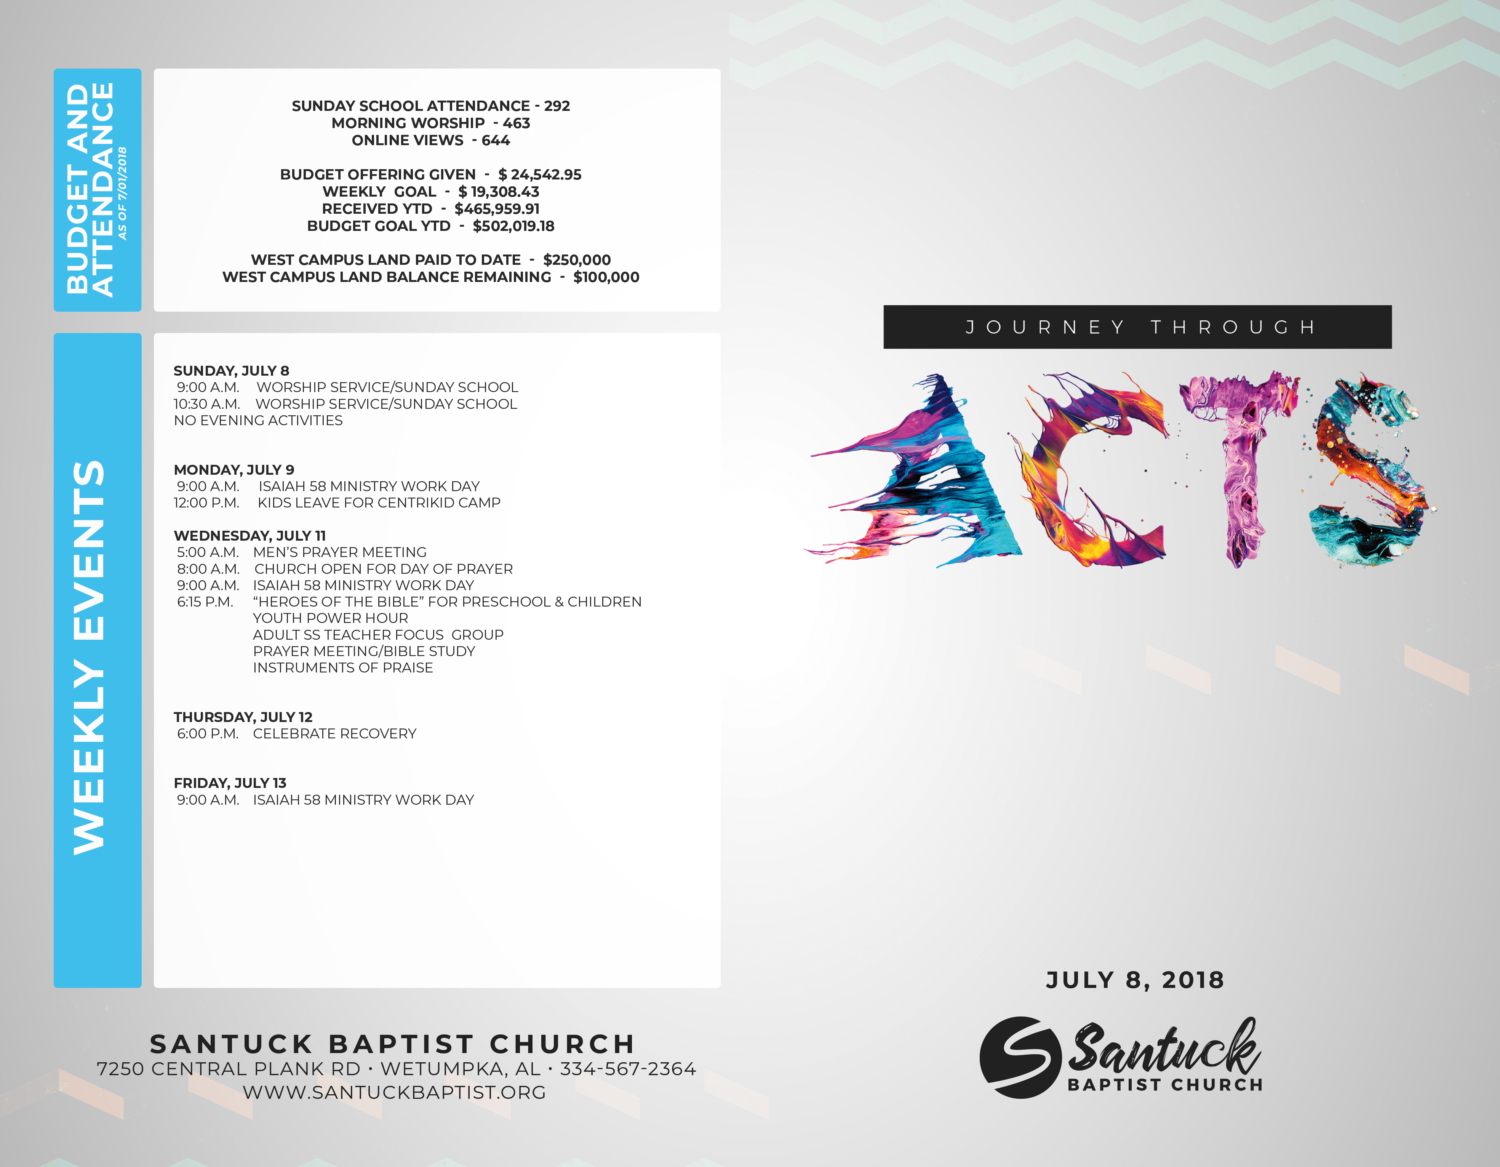 santuck baptist church of wetumpka al newsletters worship guides